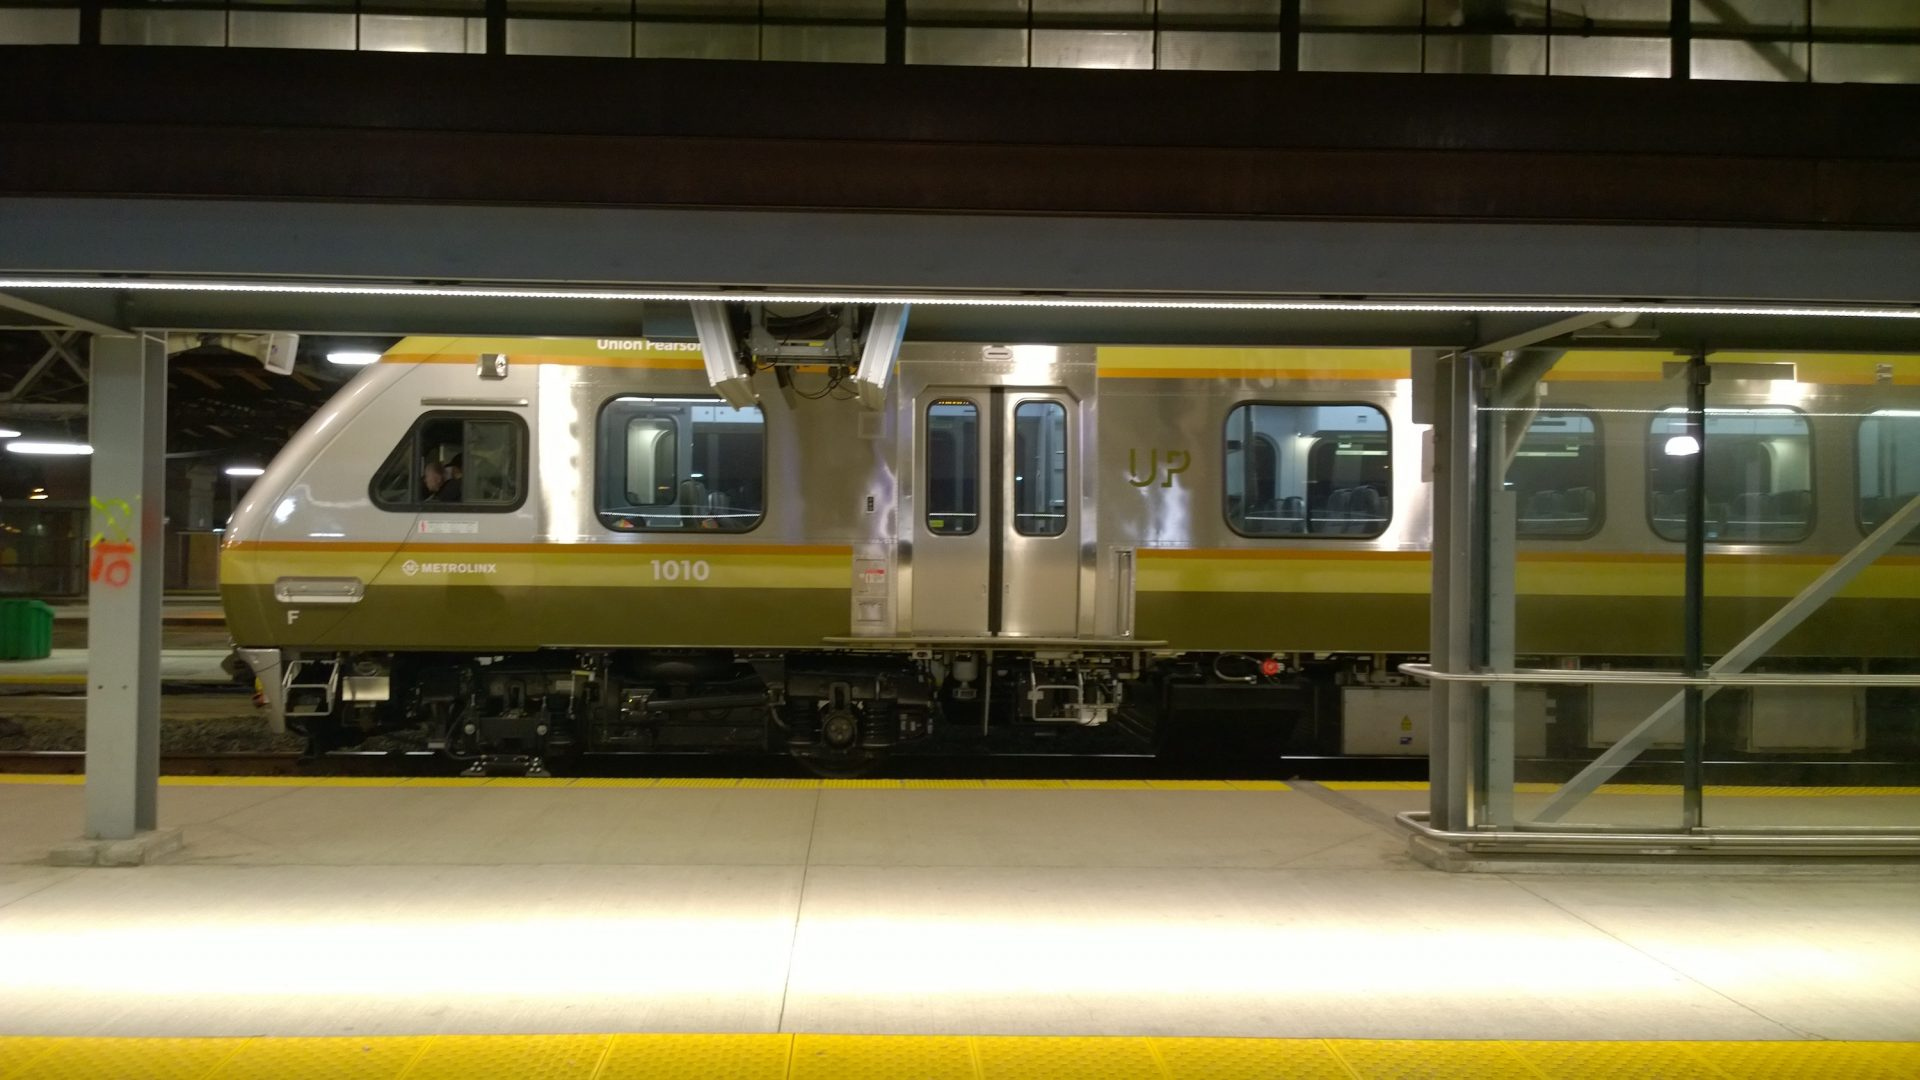 UP passenger train stopped at Union station or Pearson Airport